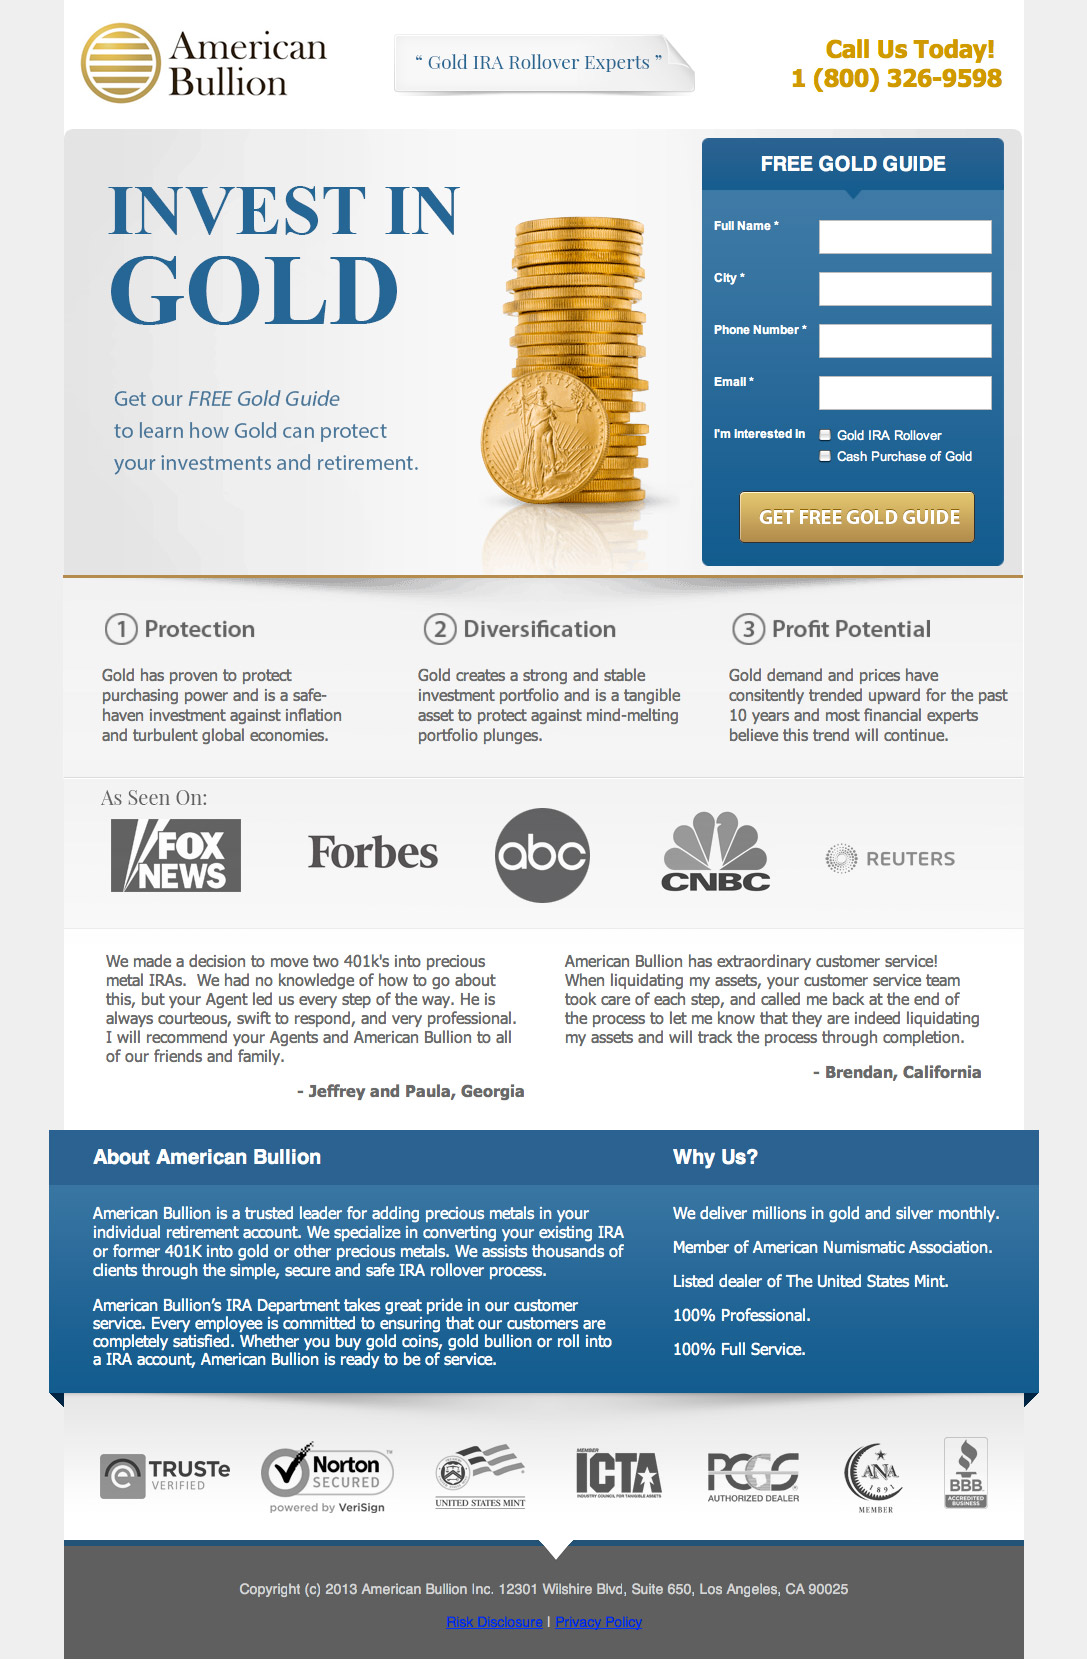 creative landing page design examples a showcase and critique american bullion landing page example